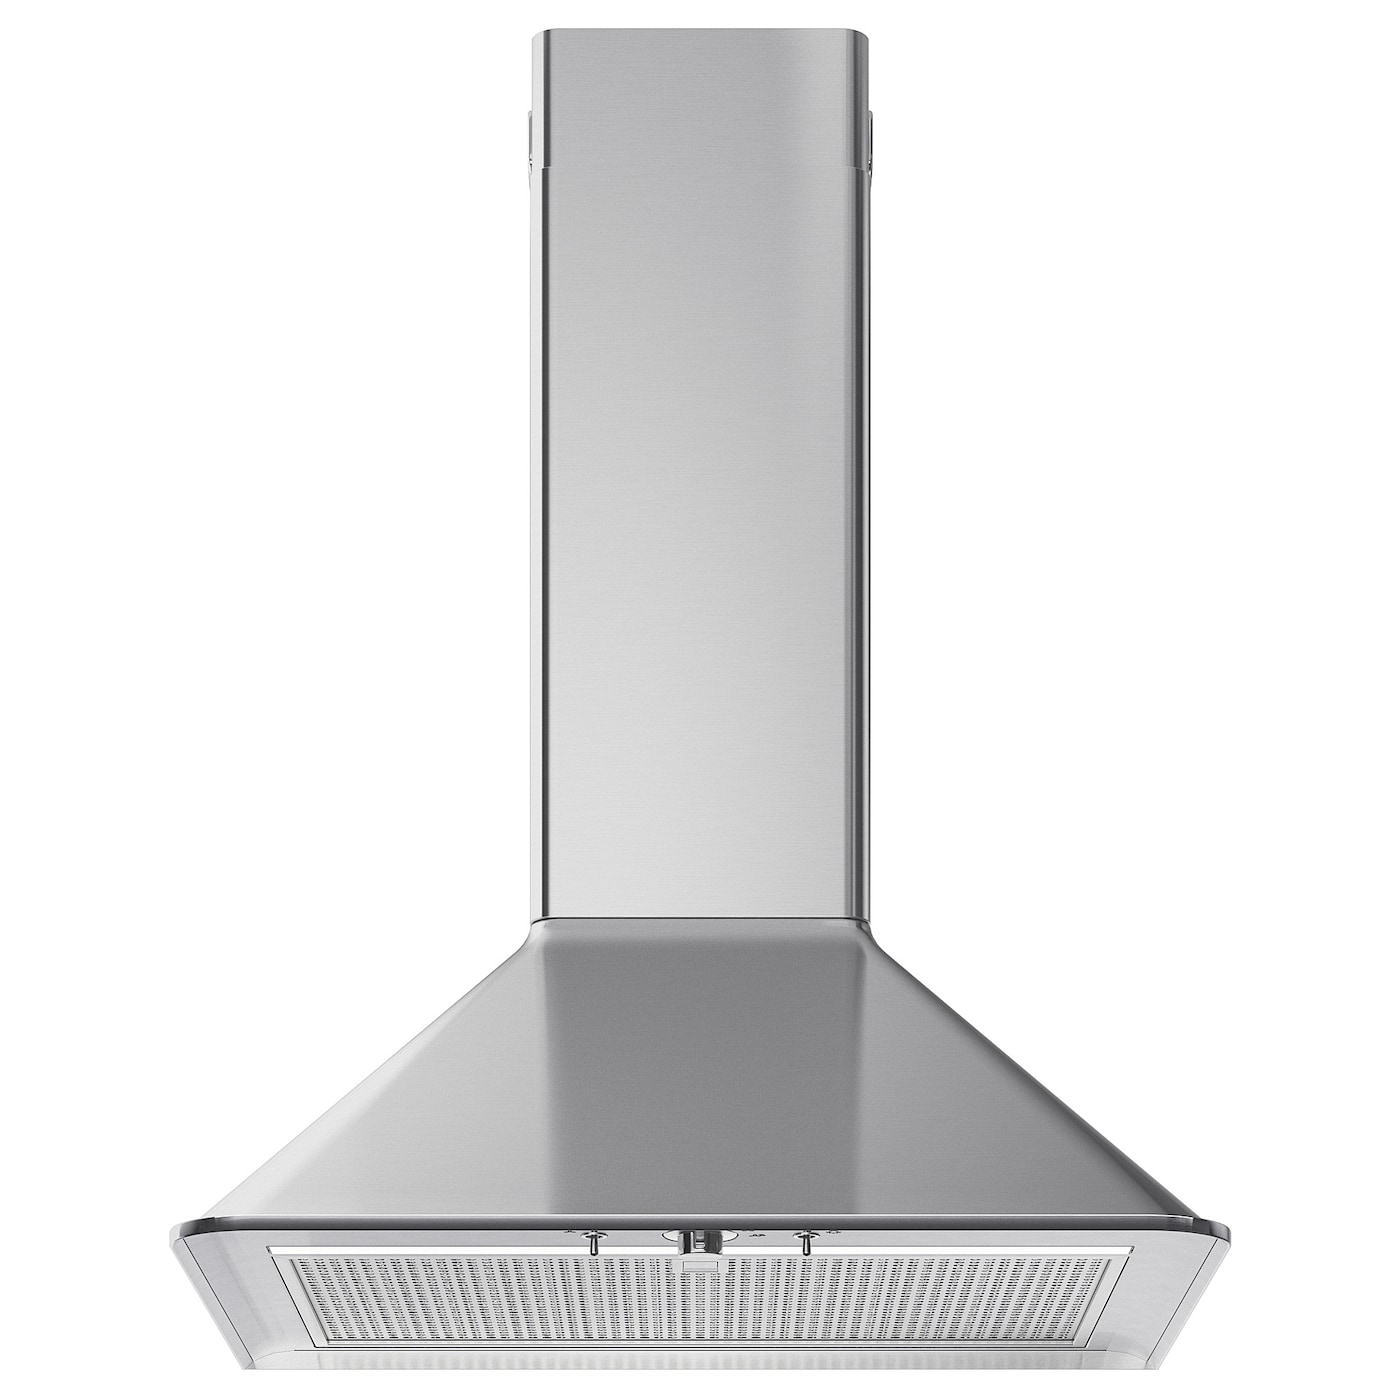 Ikea Kitchen Appliances: MATTRADITION Wall Mounted Extractor Hood Stainless Steel